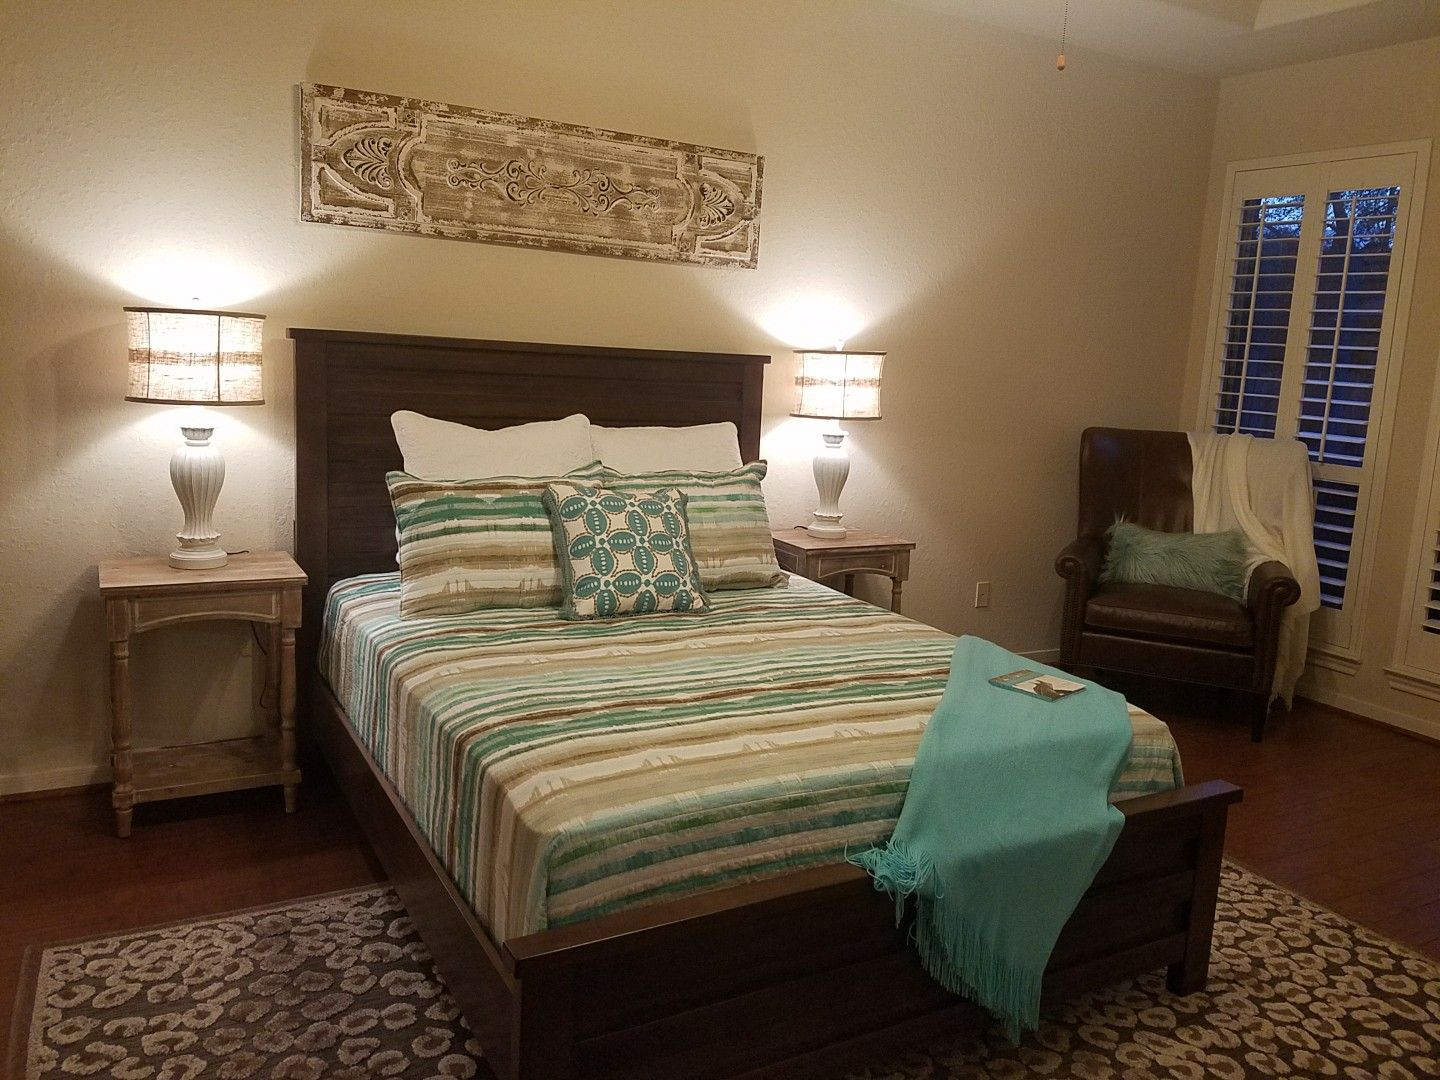 Farmhouse Style Simple Solutions Home Staging Dream room